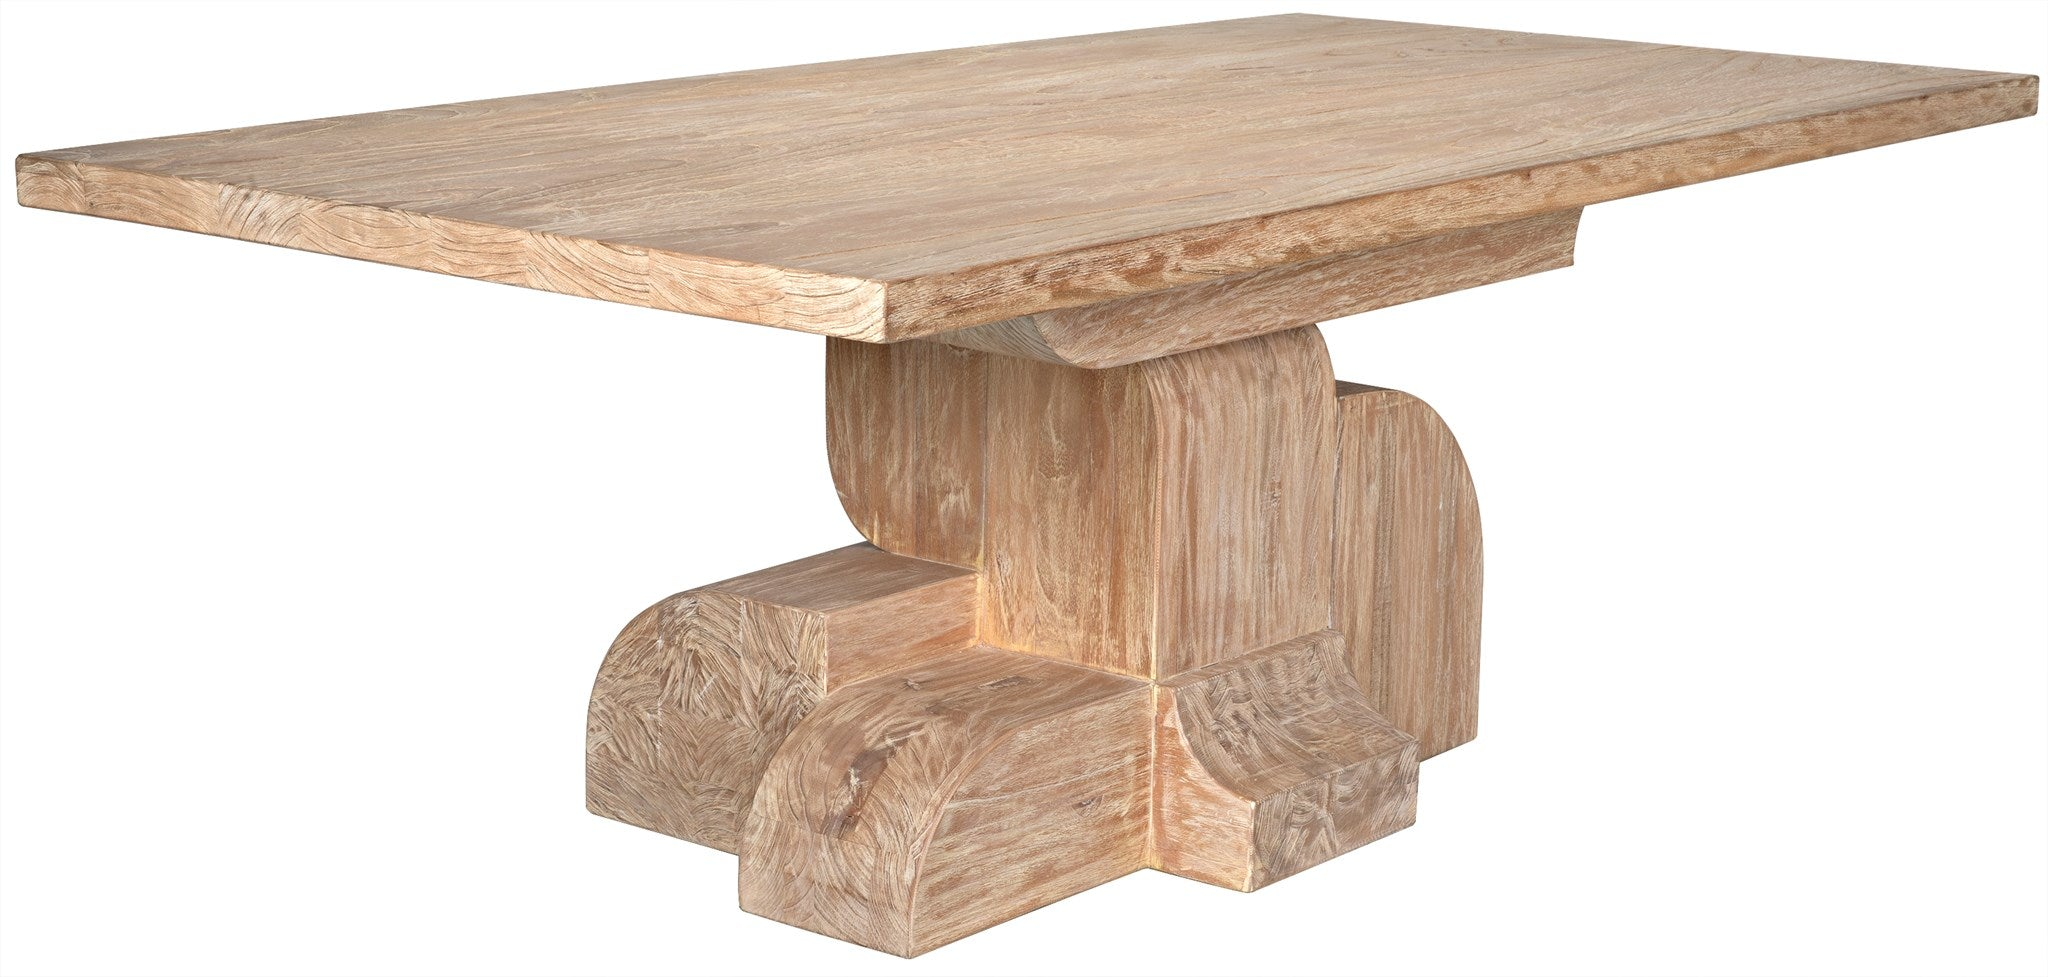 Distressed Mindi Dining Table